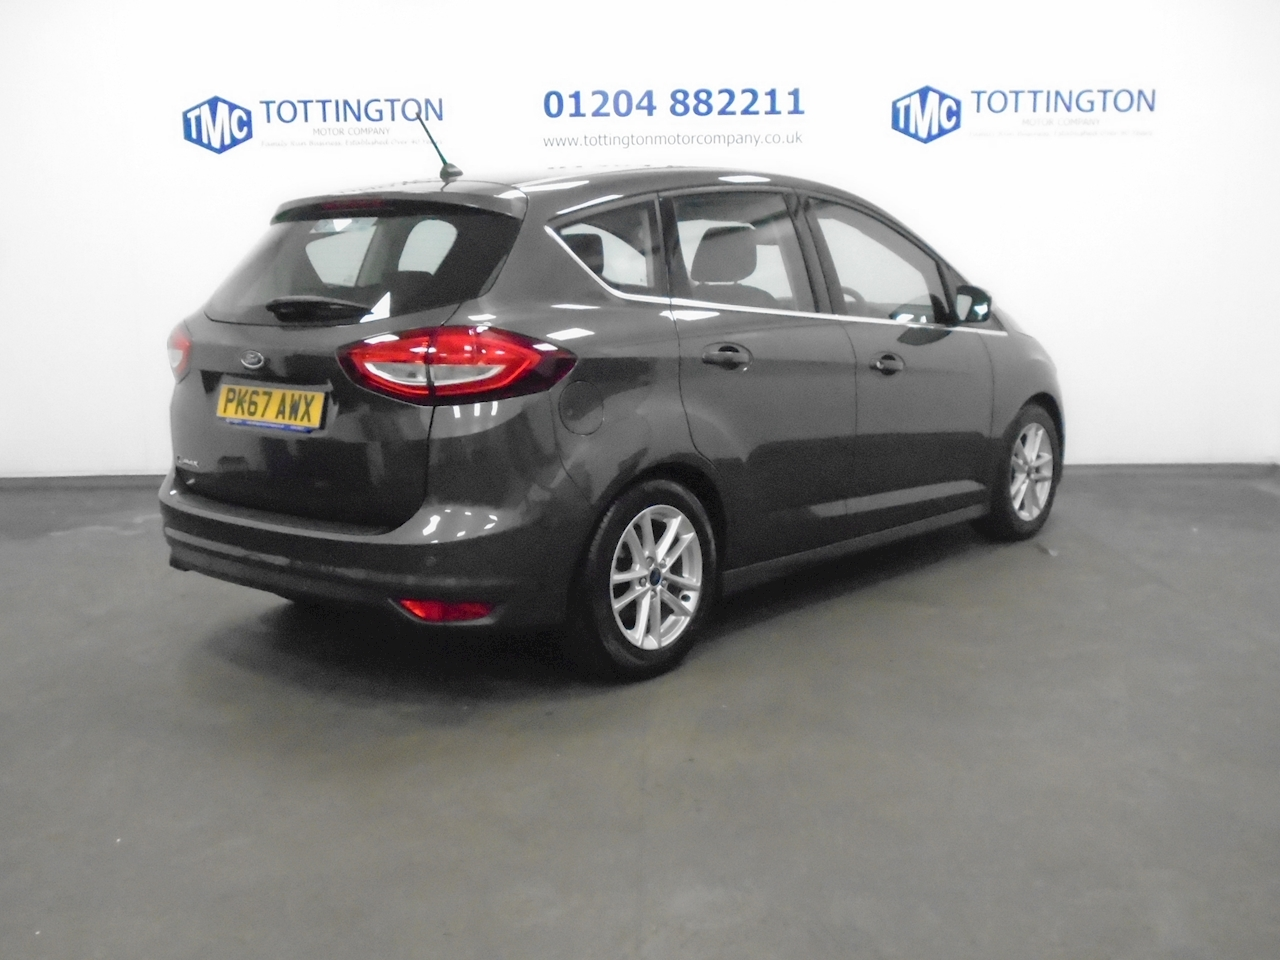 Ford C-Max Zetec 1.6 5dr MPV Manual Petrol